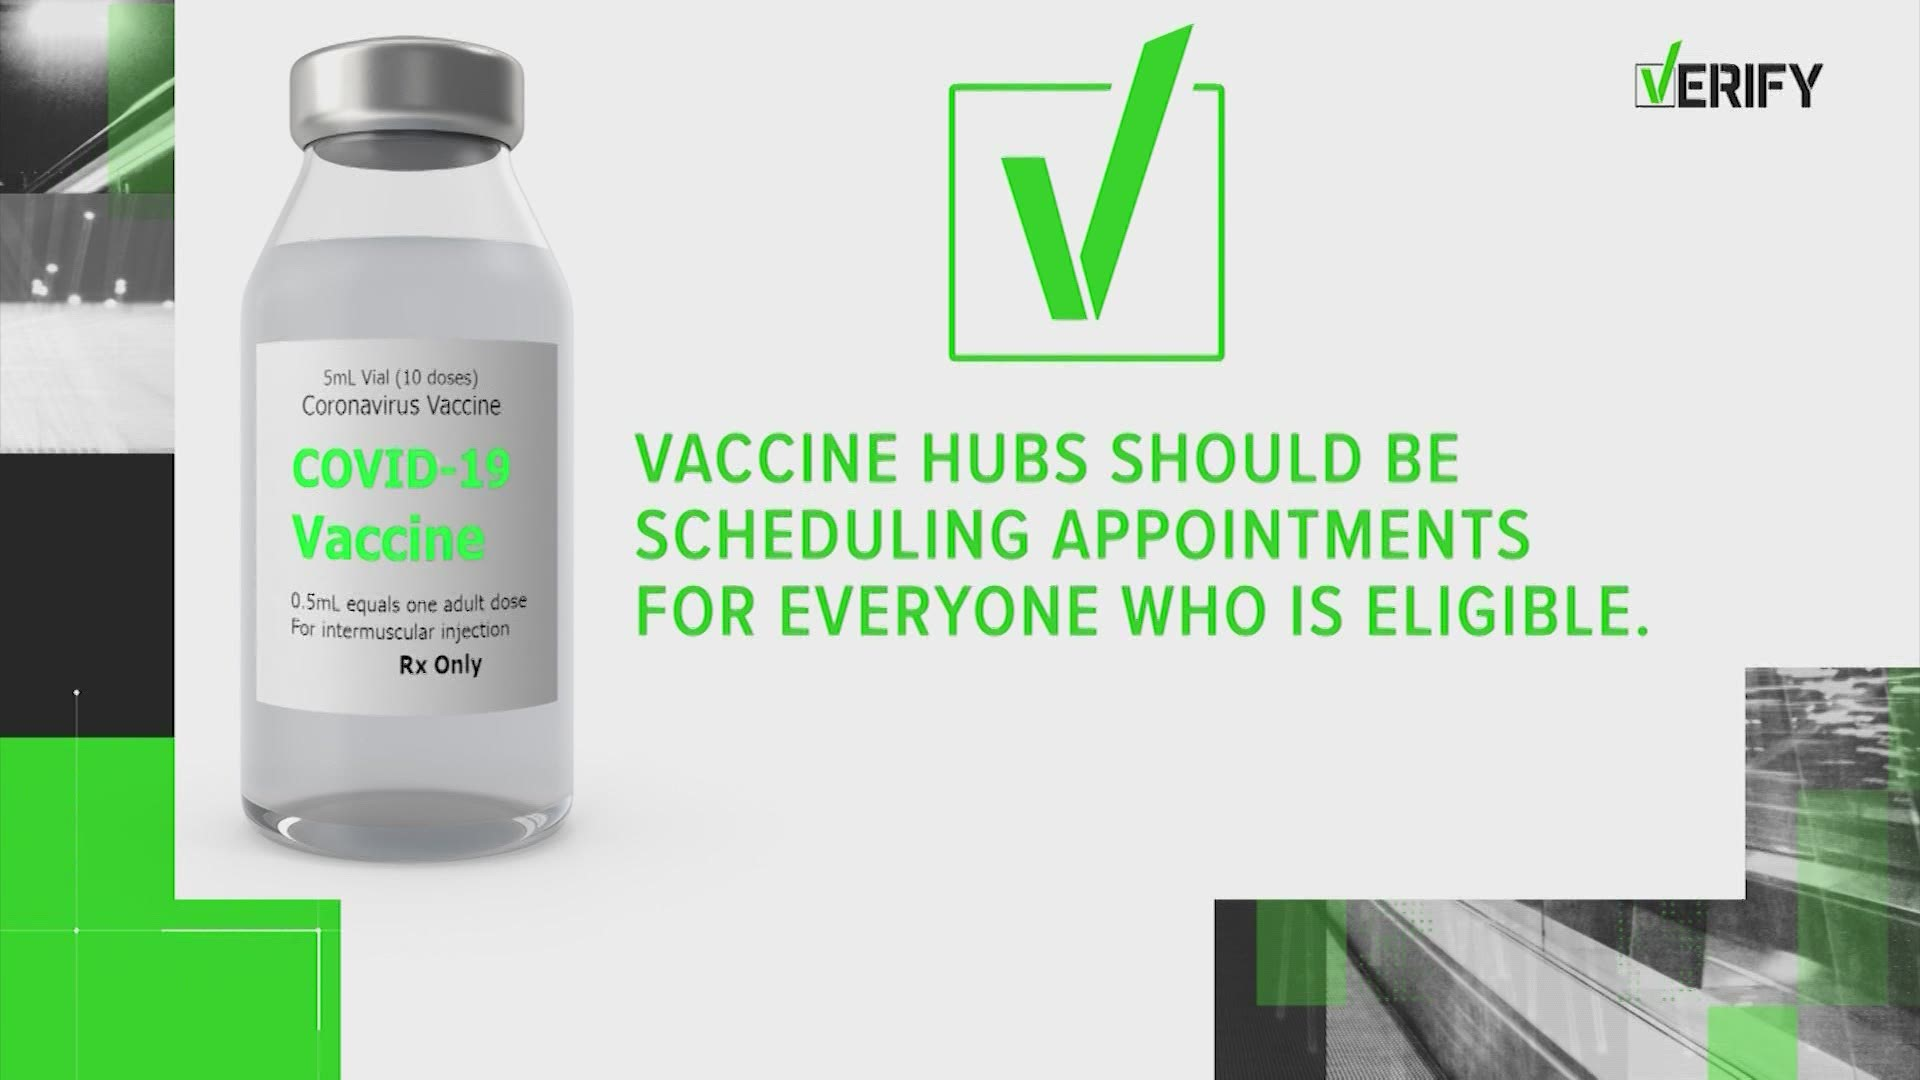 Verify Those Eligible Should Be Able To Get Covid Vaccine Anywhe 9news Com